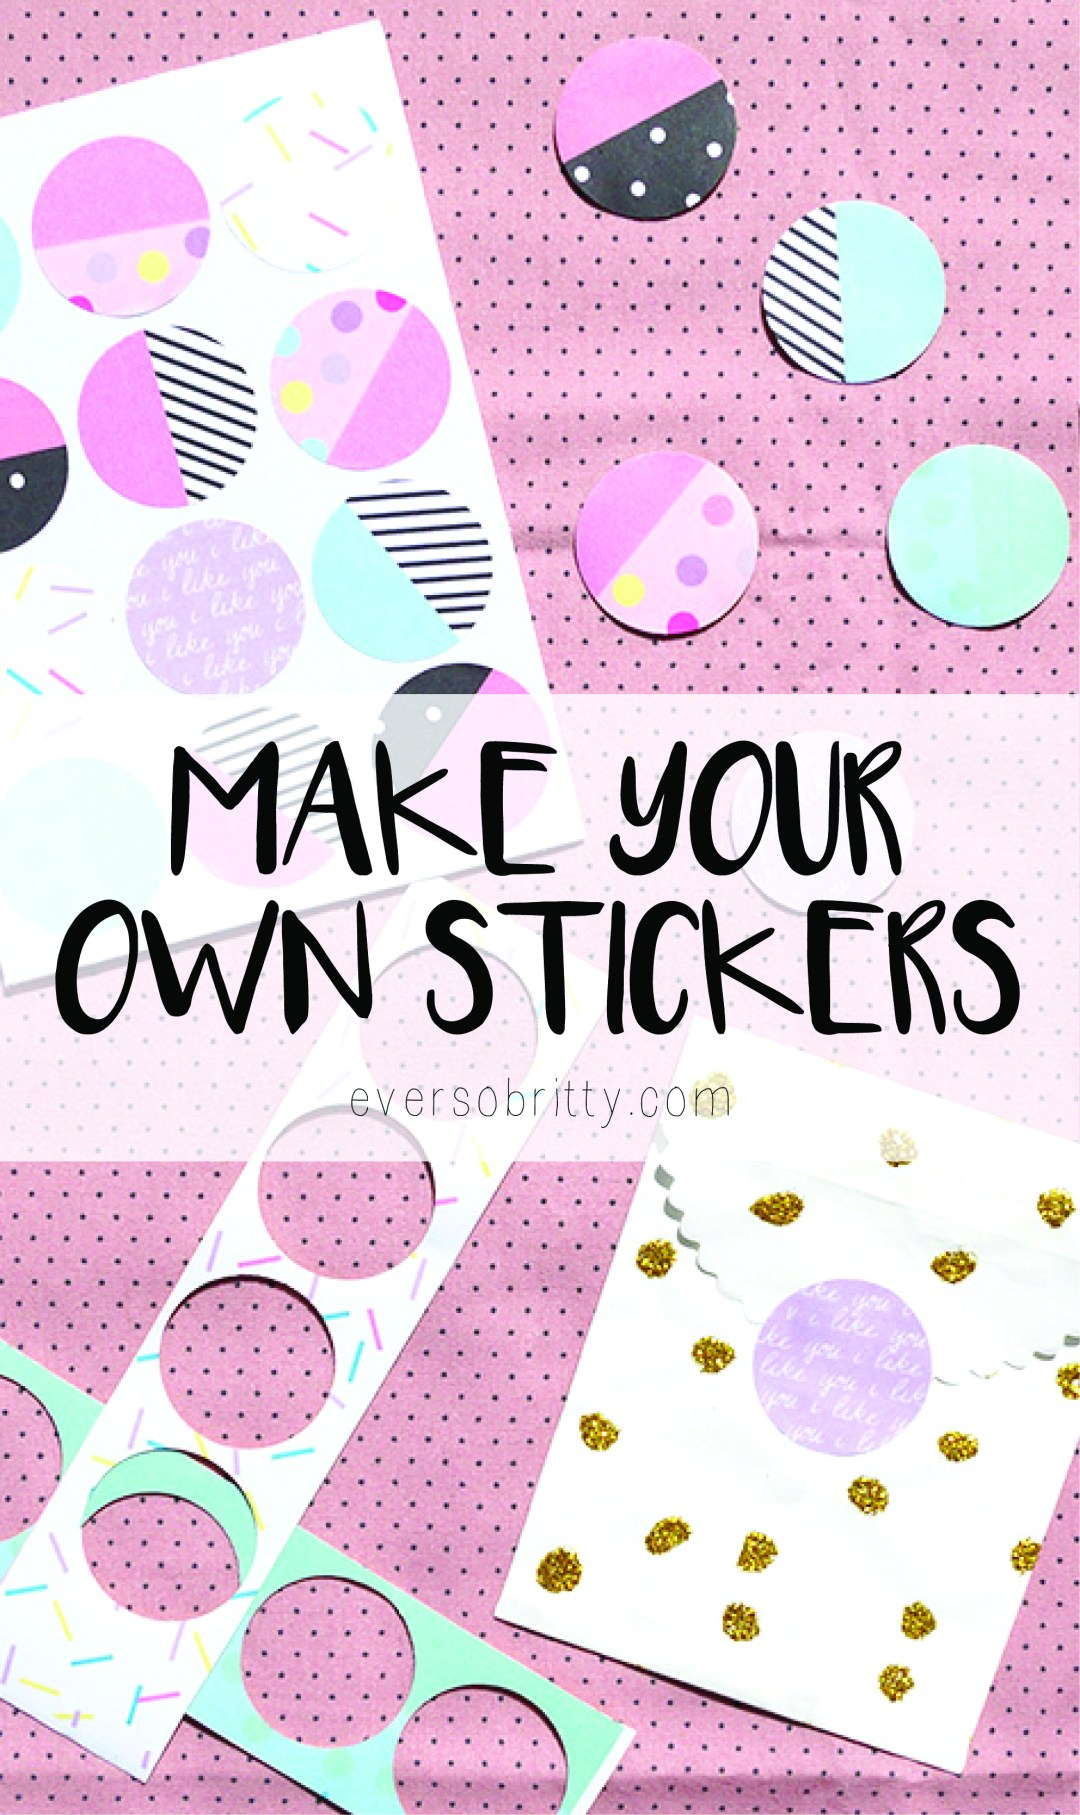 make your own stickers free printable ever so britty With create your own stickers free